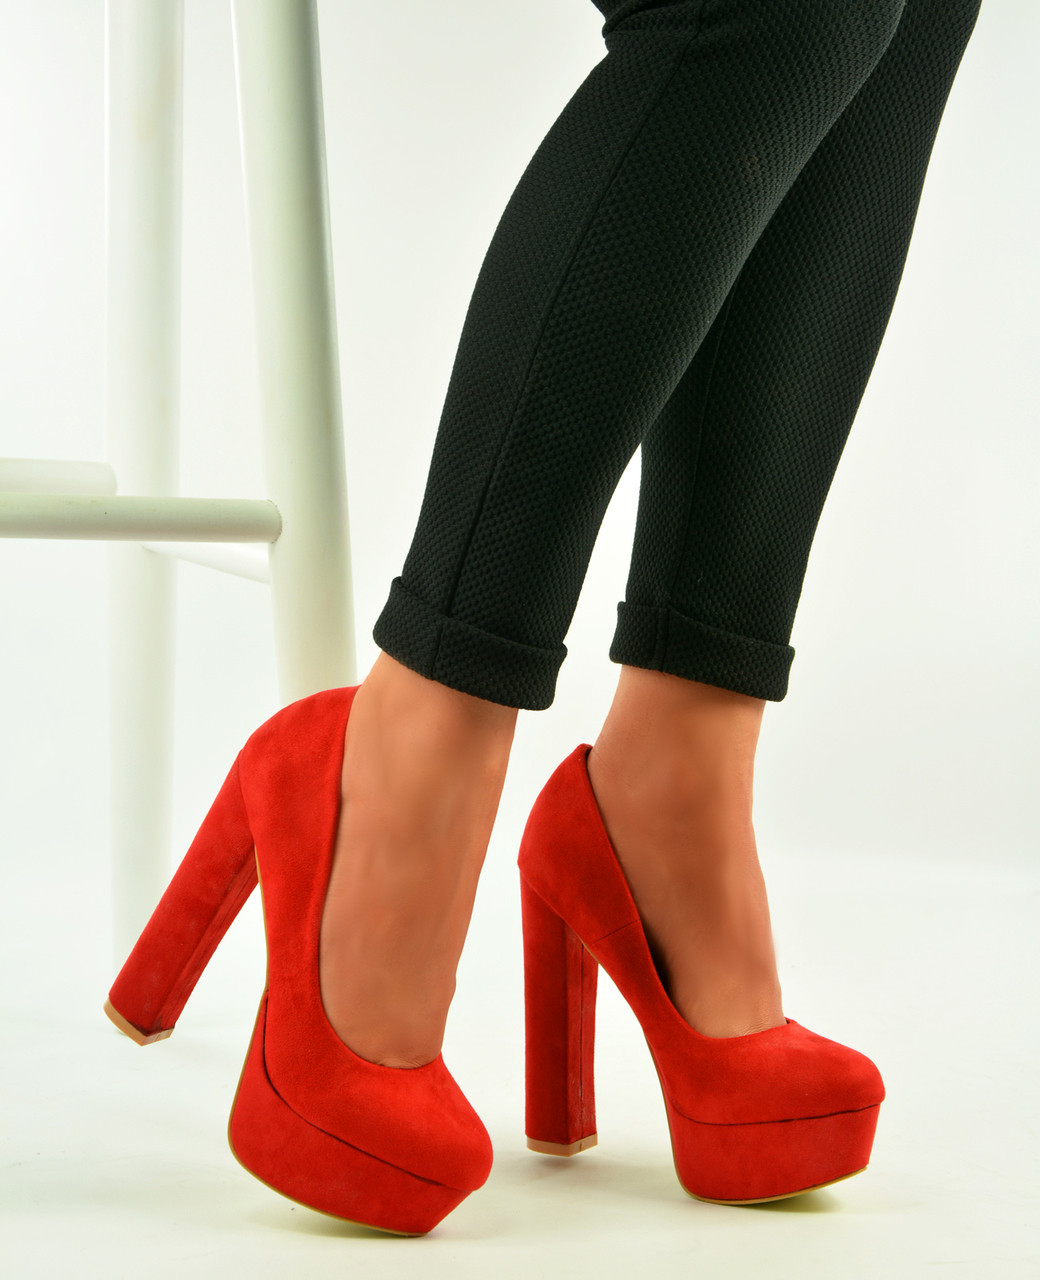 Clearance sale purchase original purchase original Red High Block Heel Platform Sandals Pumps